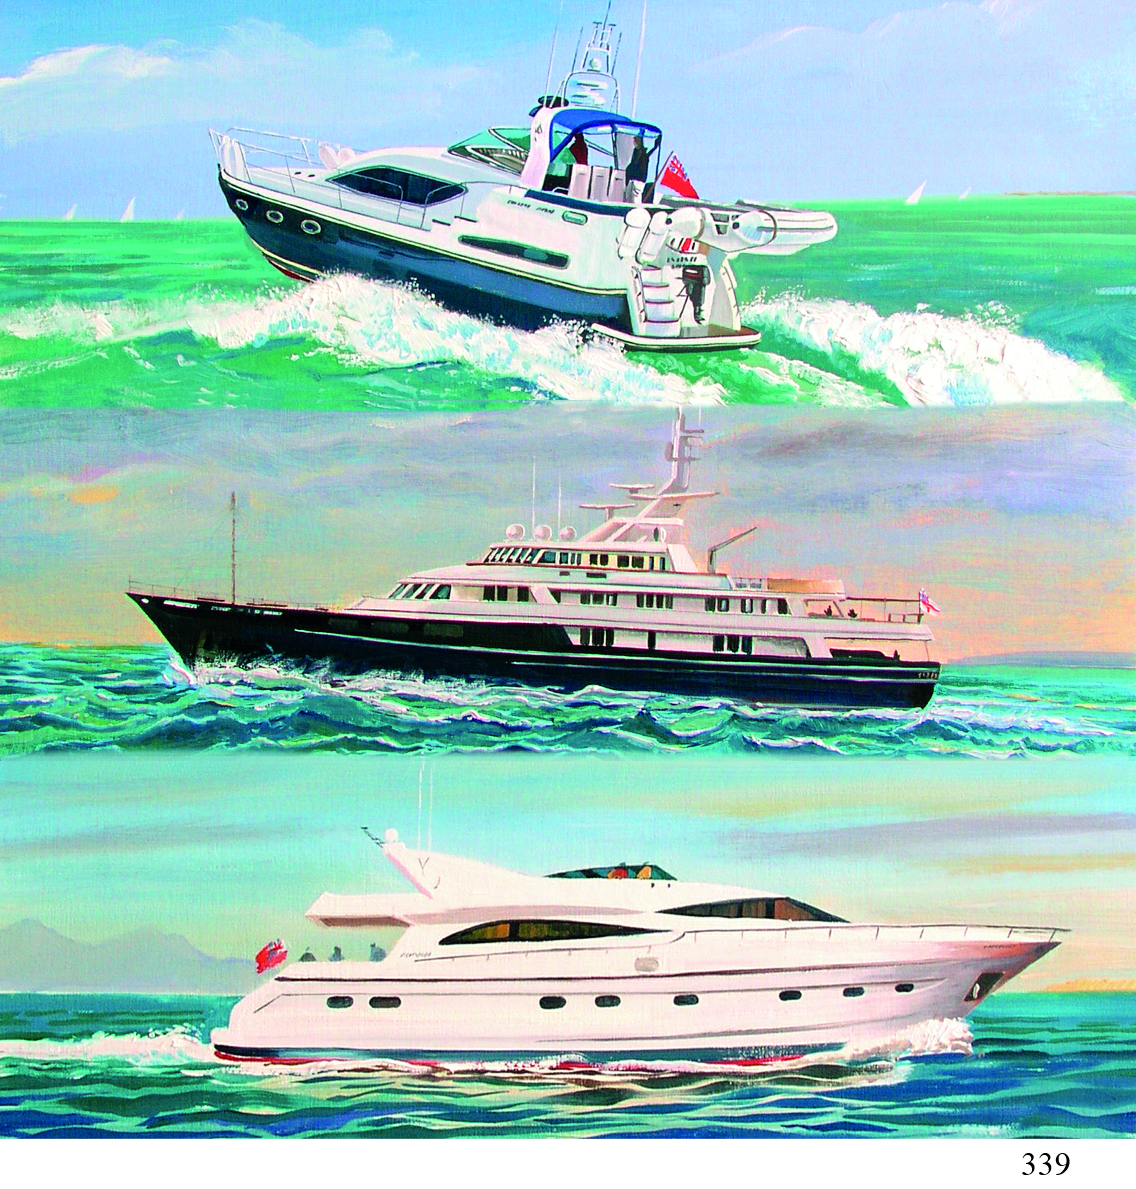 339 luxury yachts ArtyCards Oct 18.jpg